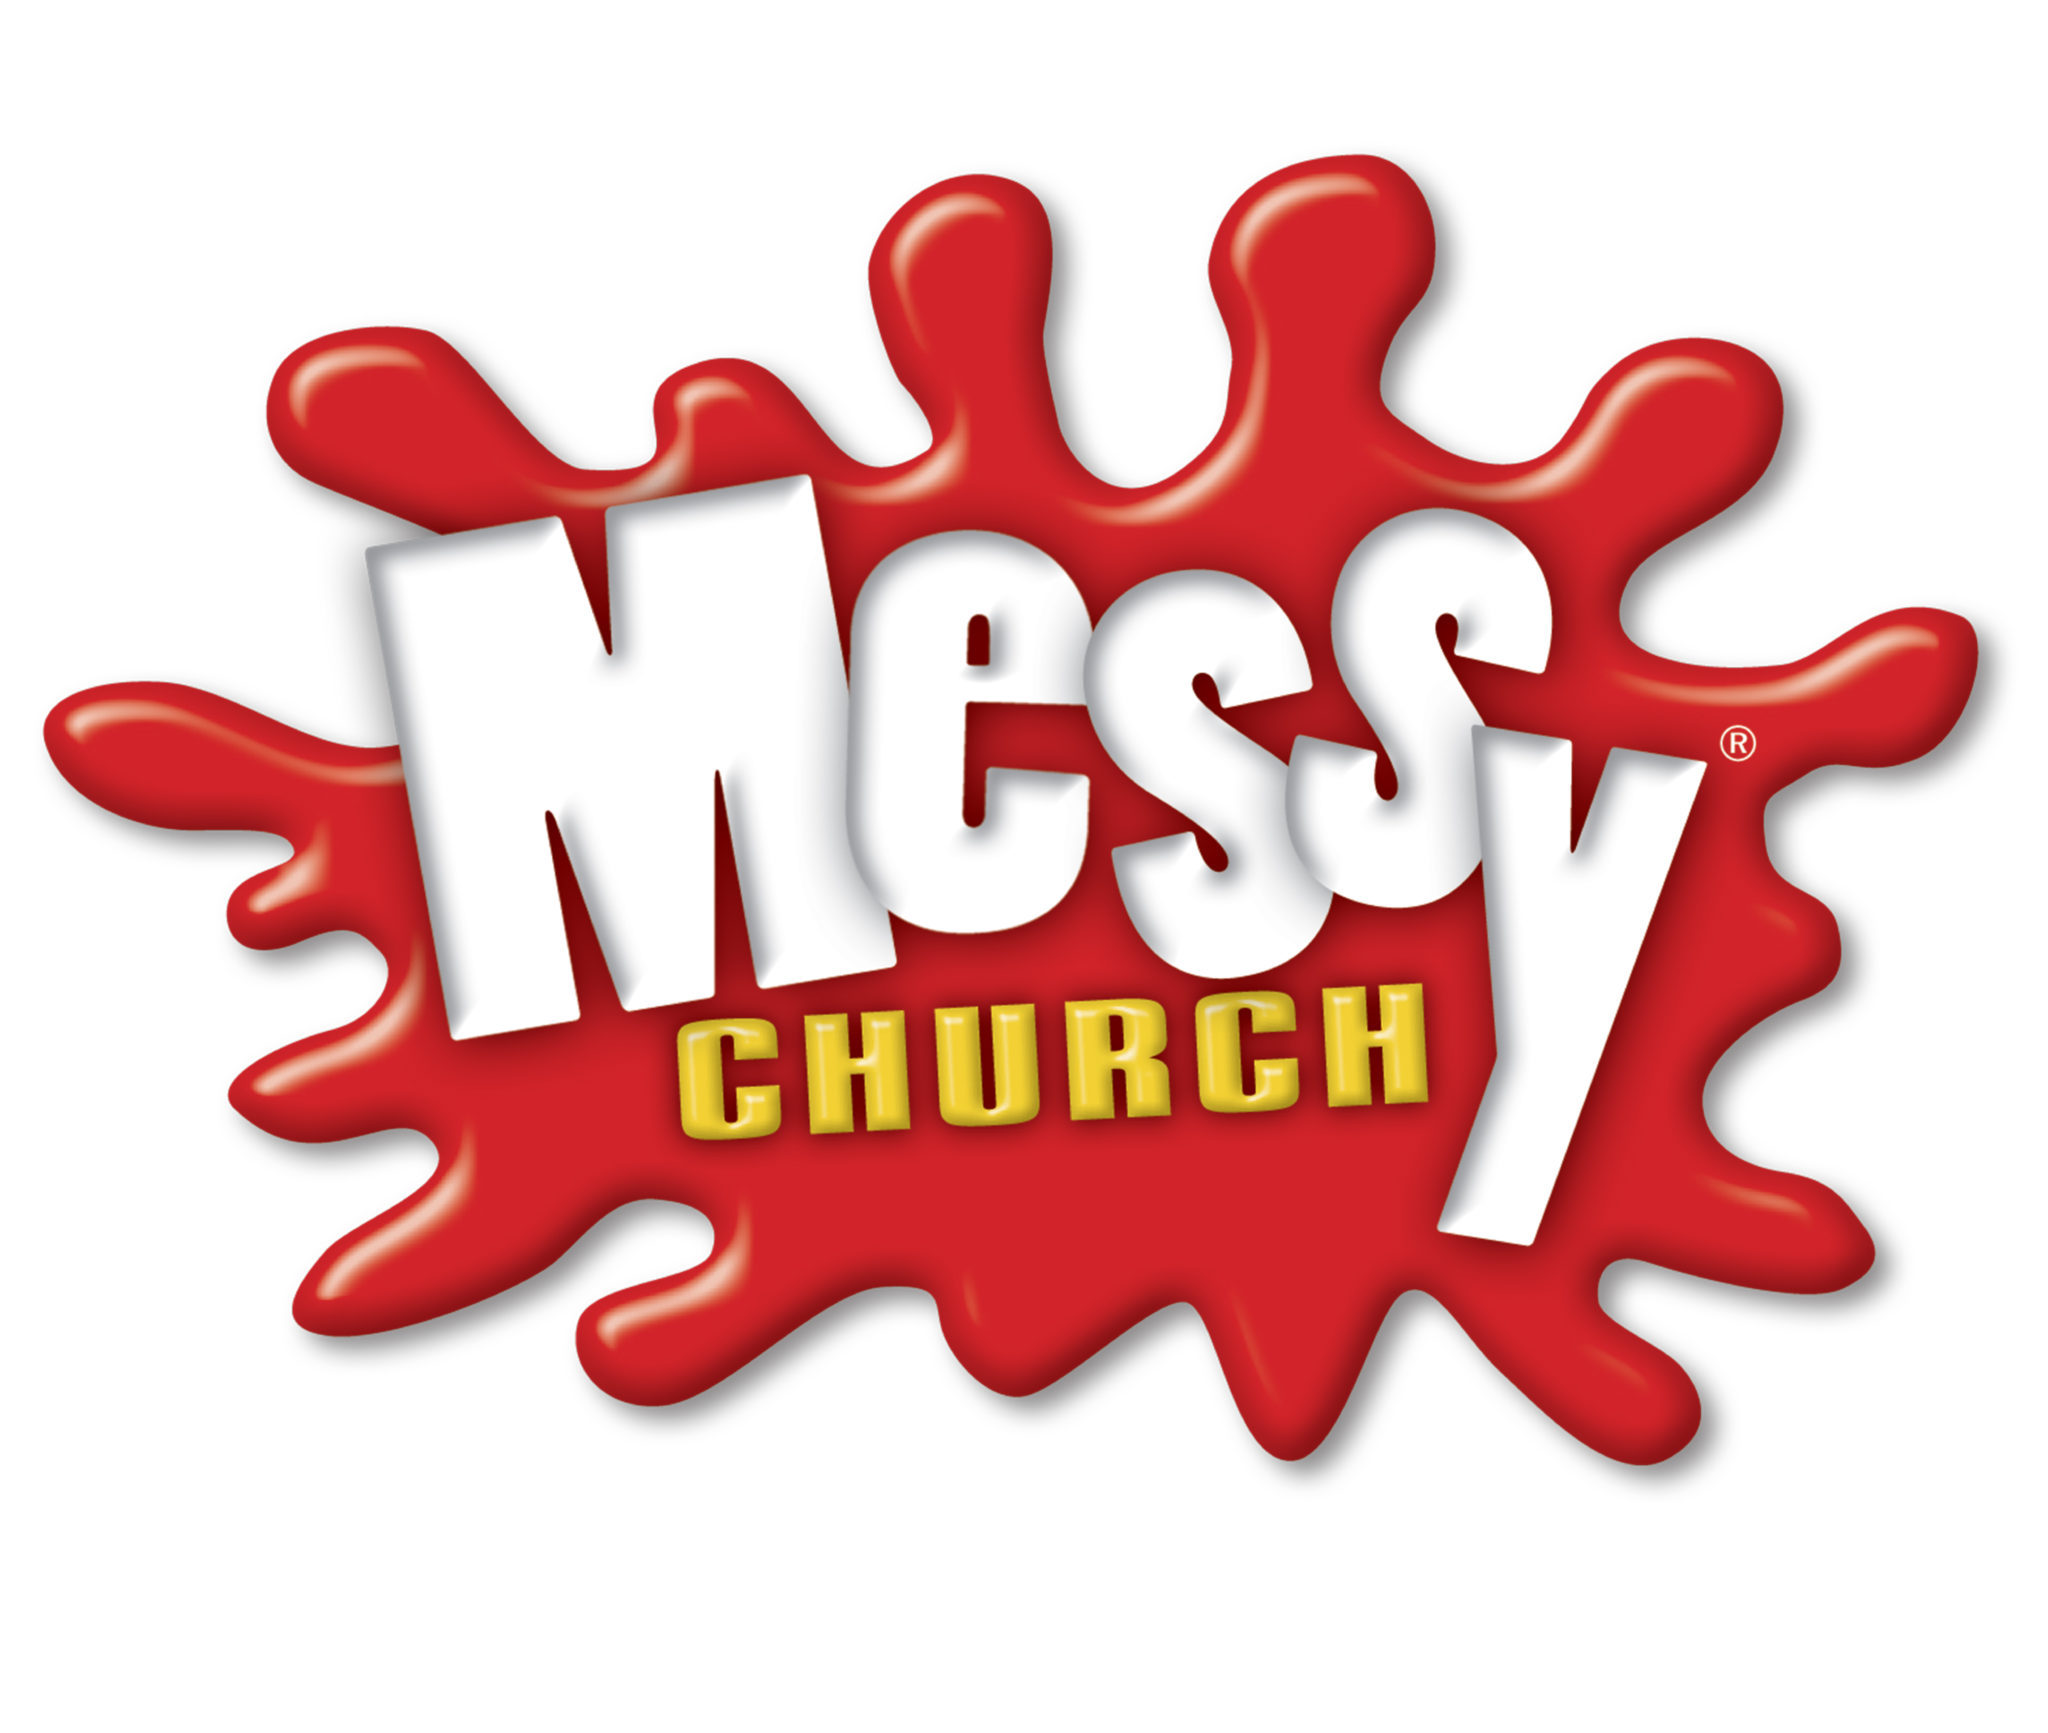 Official Messy Church logo 10000 pixels wide 300dpi